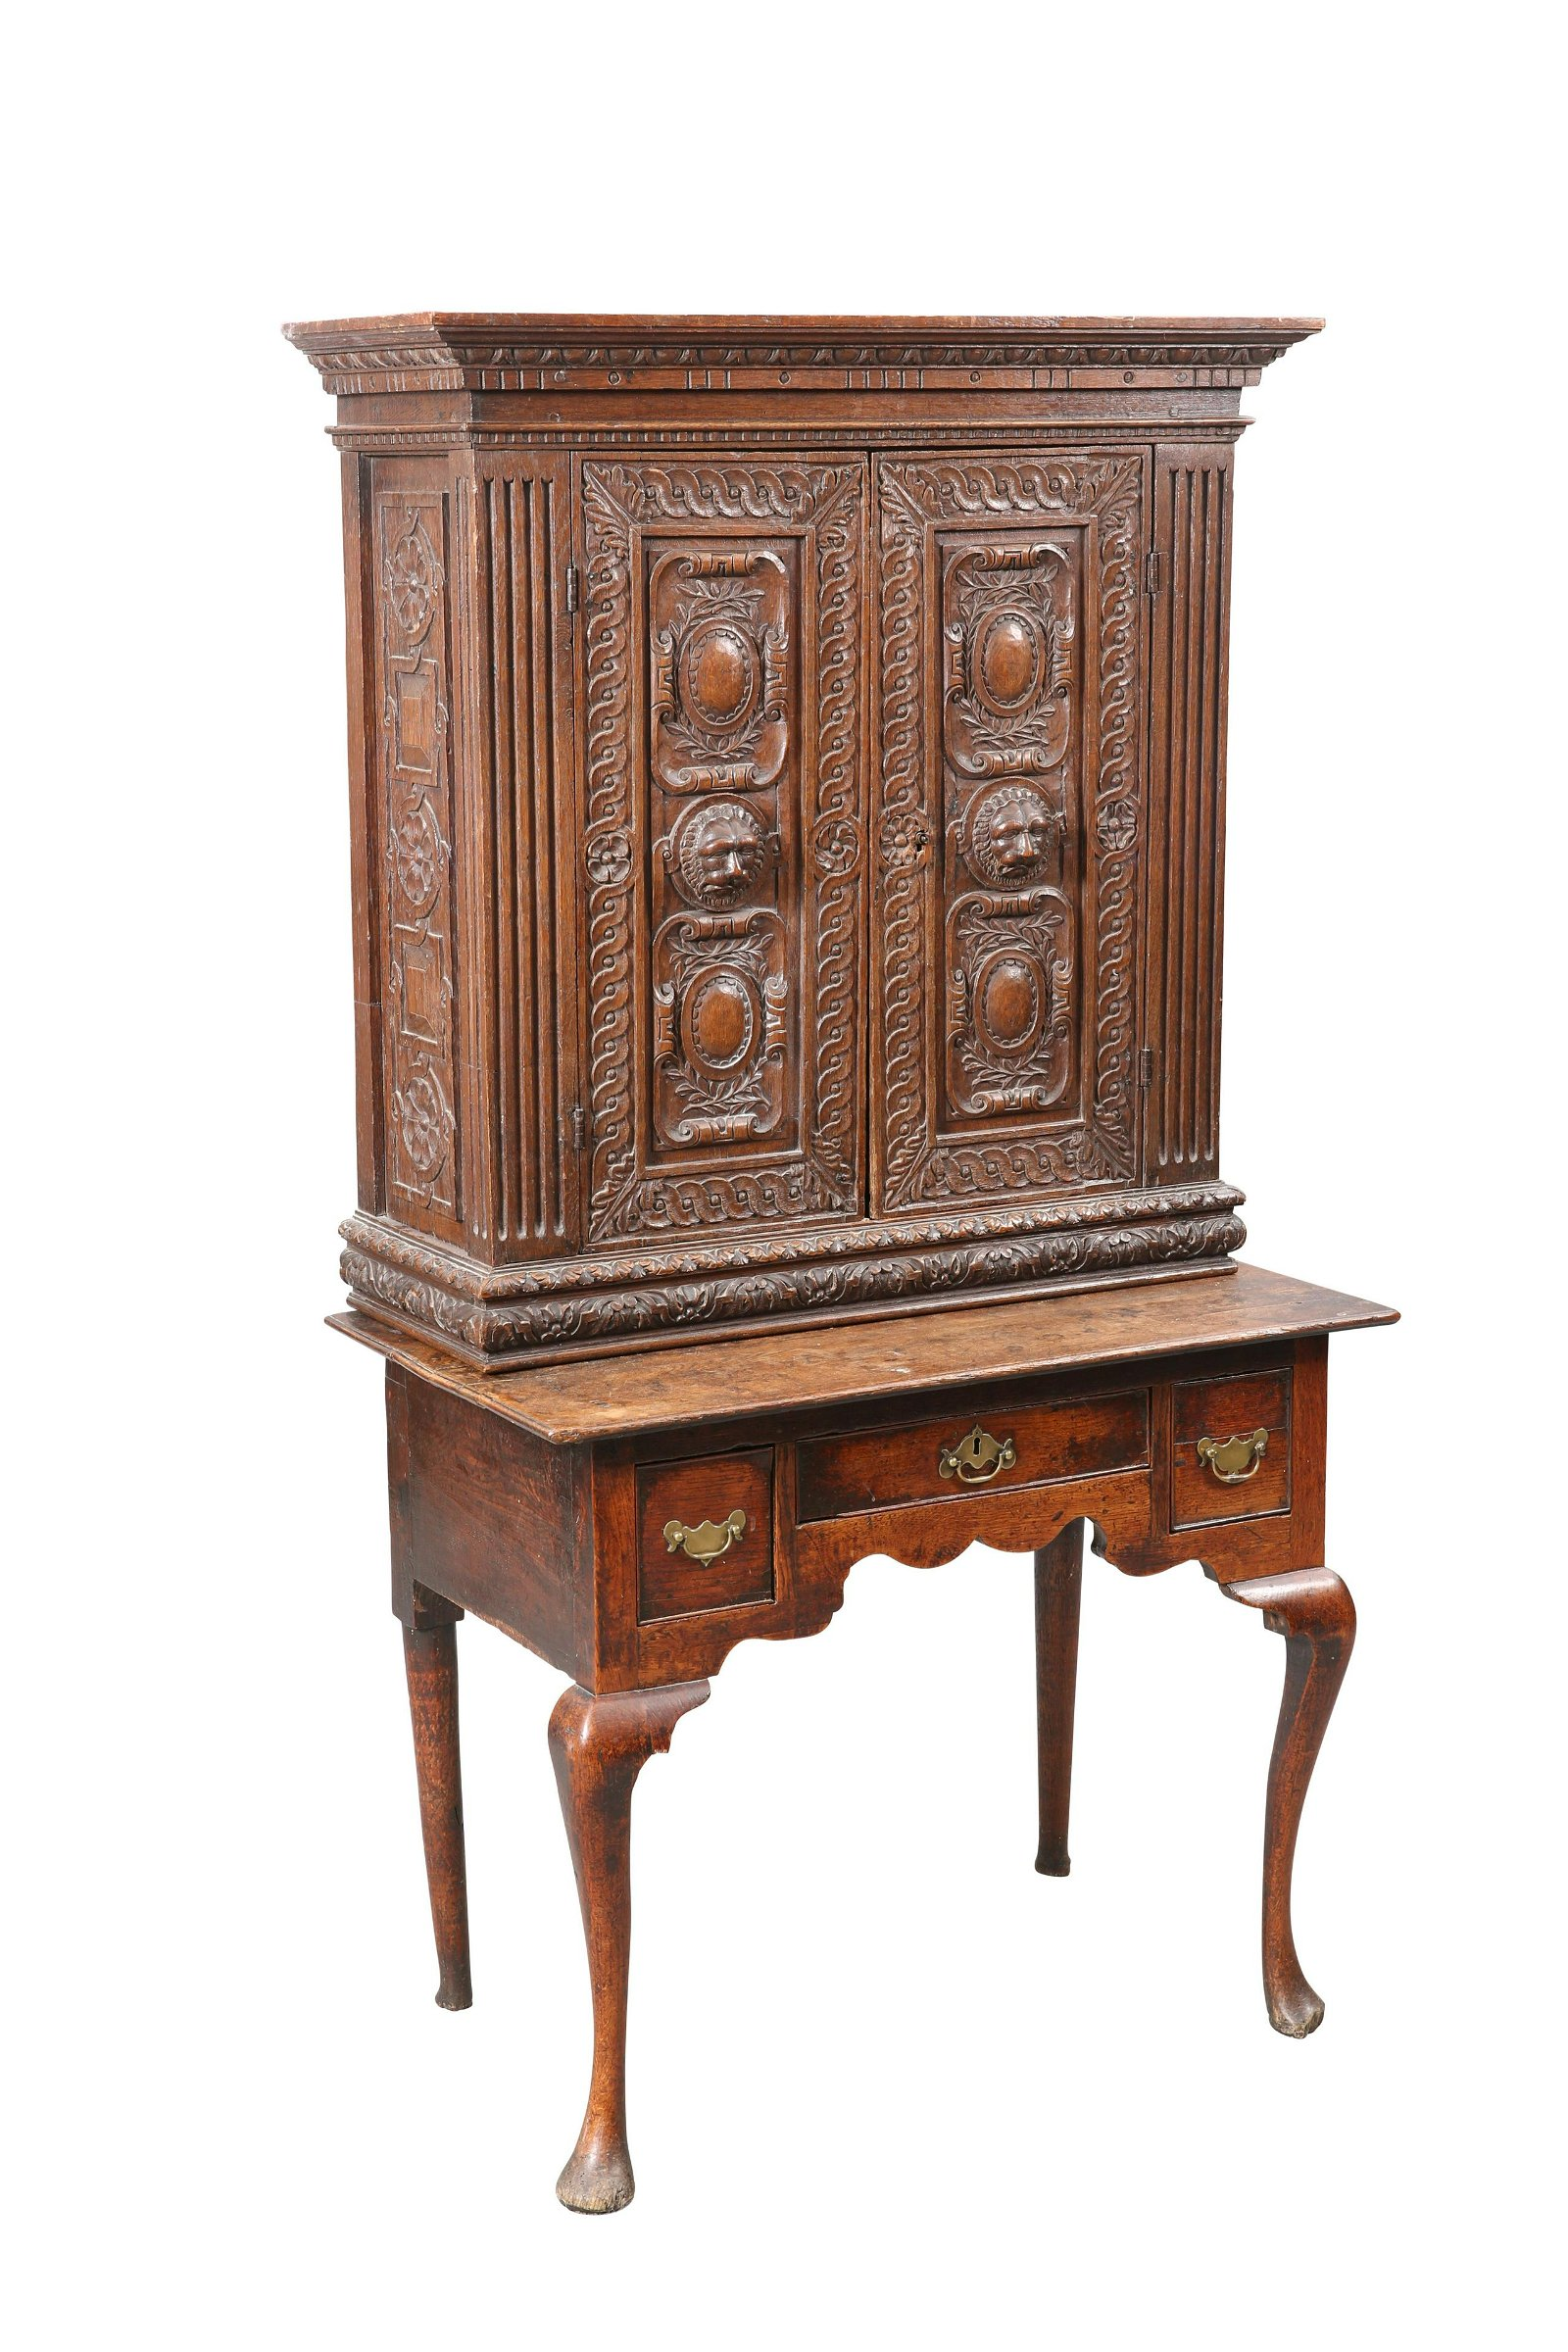 AN 18TH CENTURY OAK LOWBOY, the moulded rectangular top